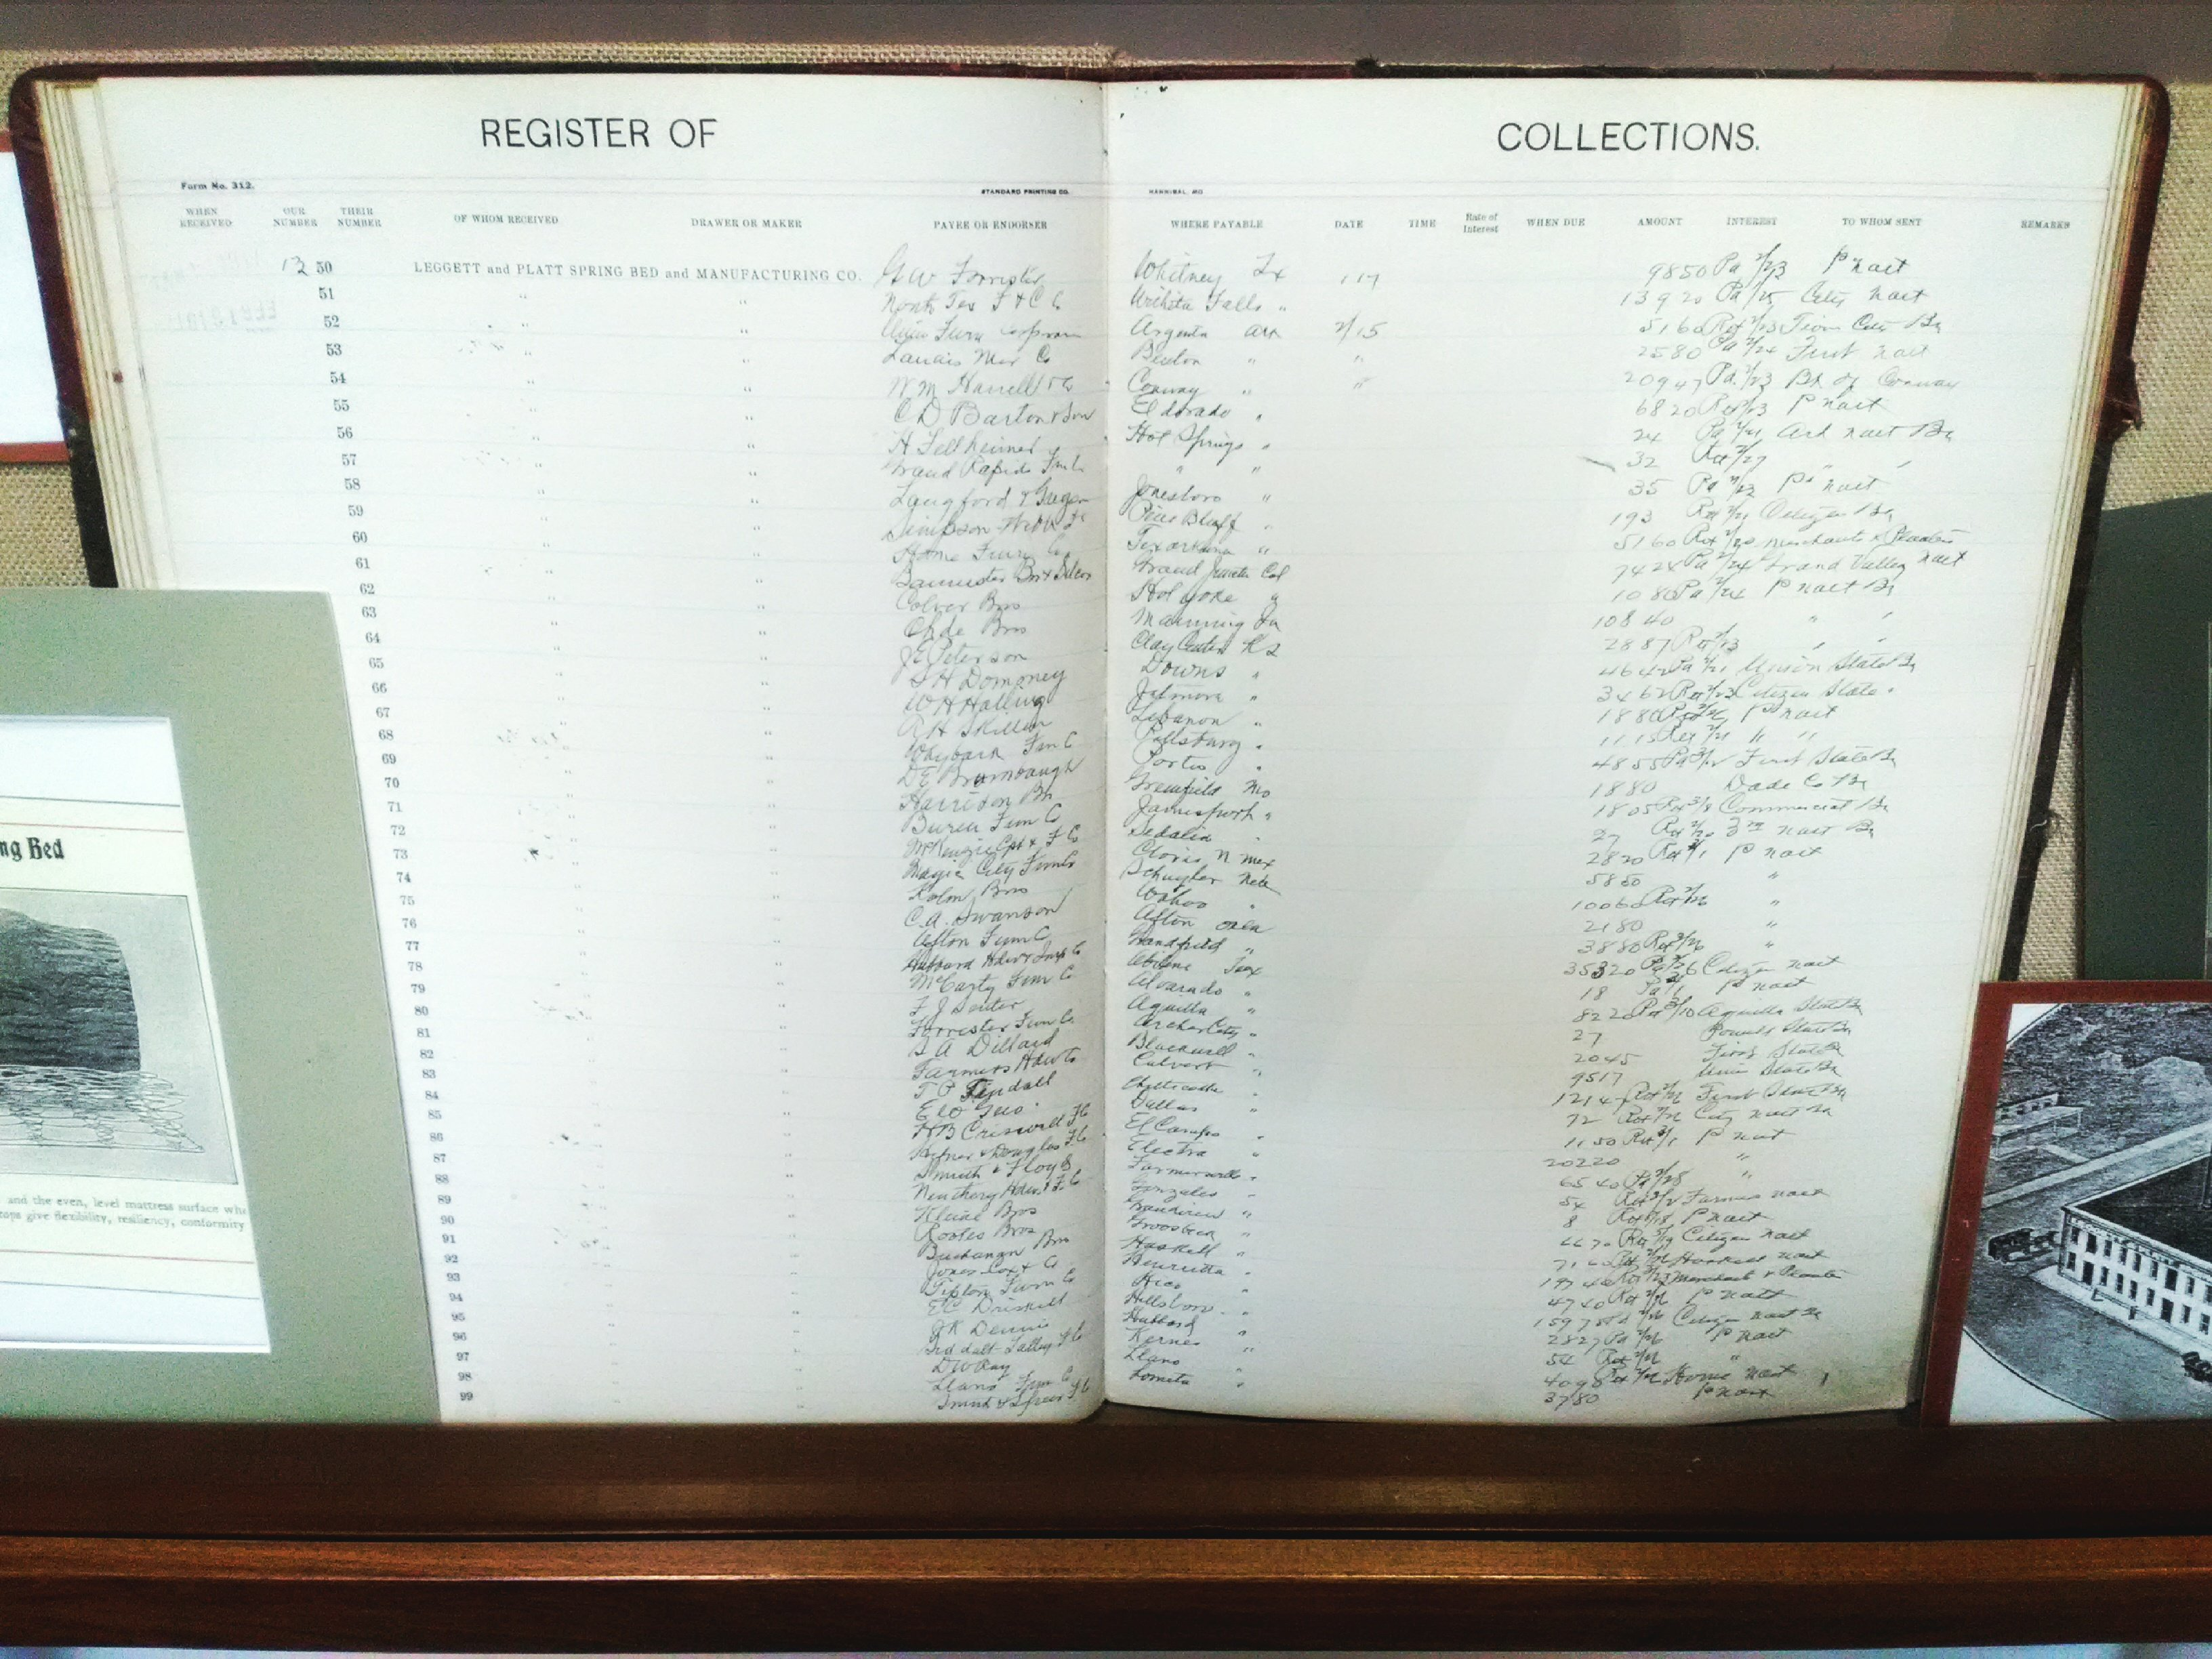 Record of Collections Ledger for Leggett and Platt, 1914 - 1918 on display as part of the 175th Anniversary of Carthage 2017 Exhibit.